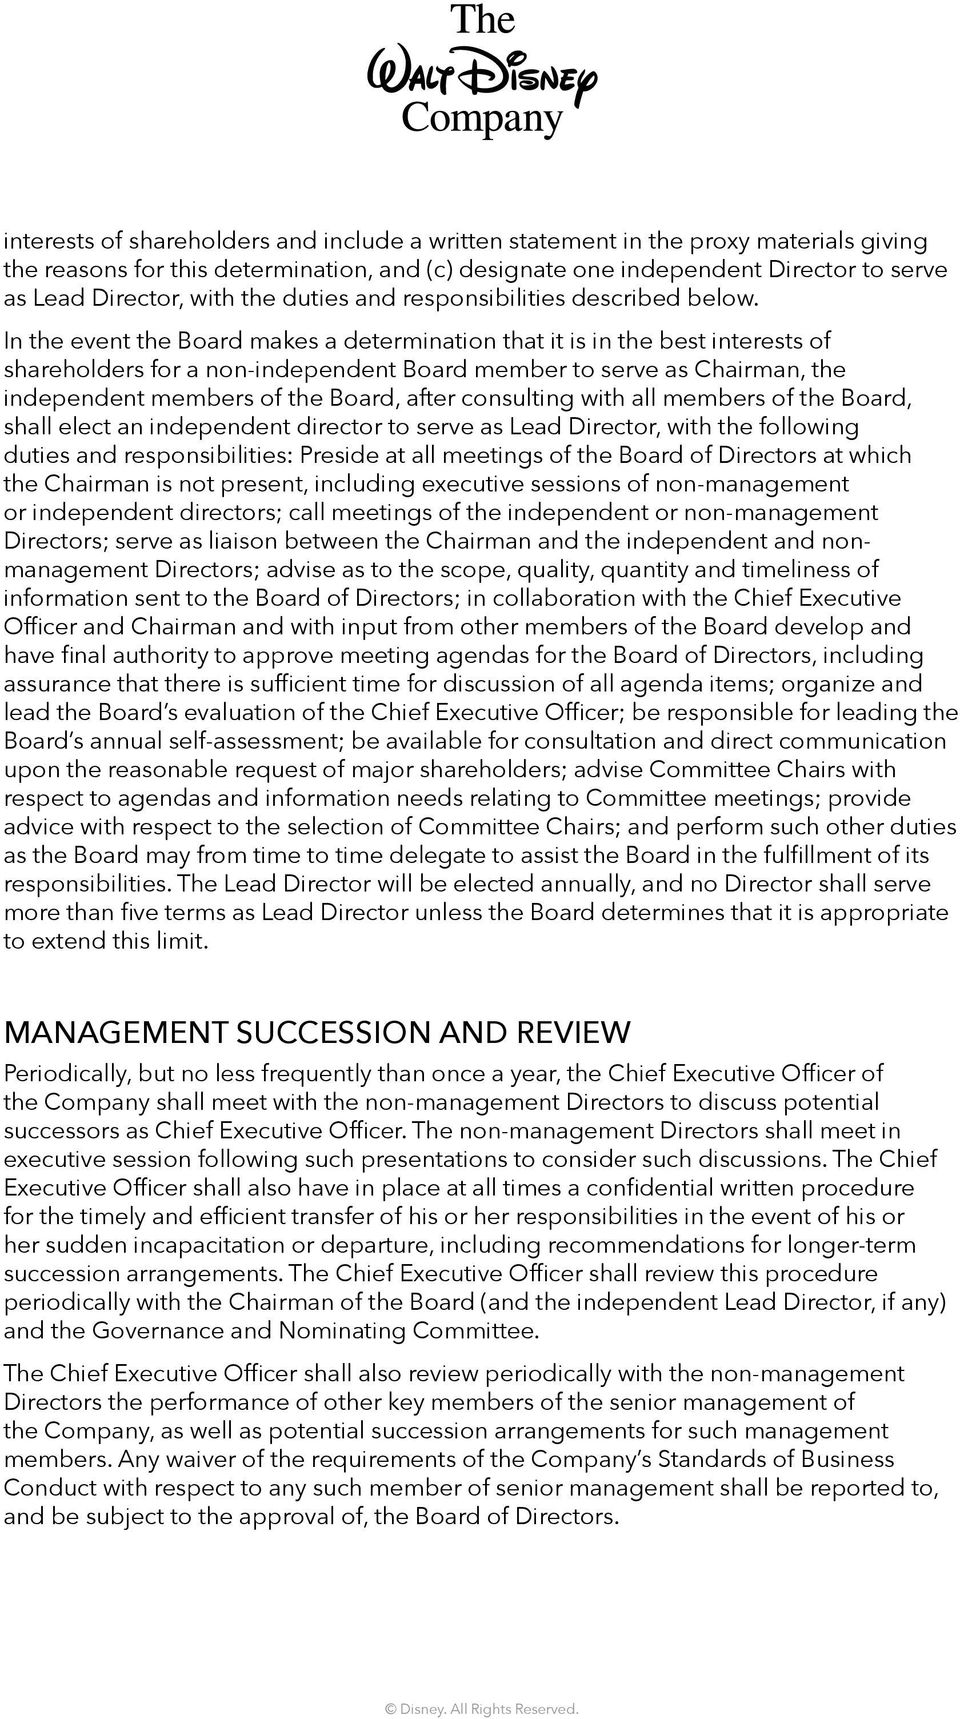 In the event the Board makes a determination that it is in the best interests of shareholders for a non-independent Board member to serve as Chairman, the independent members of the Board, after